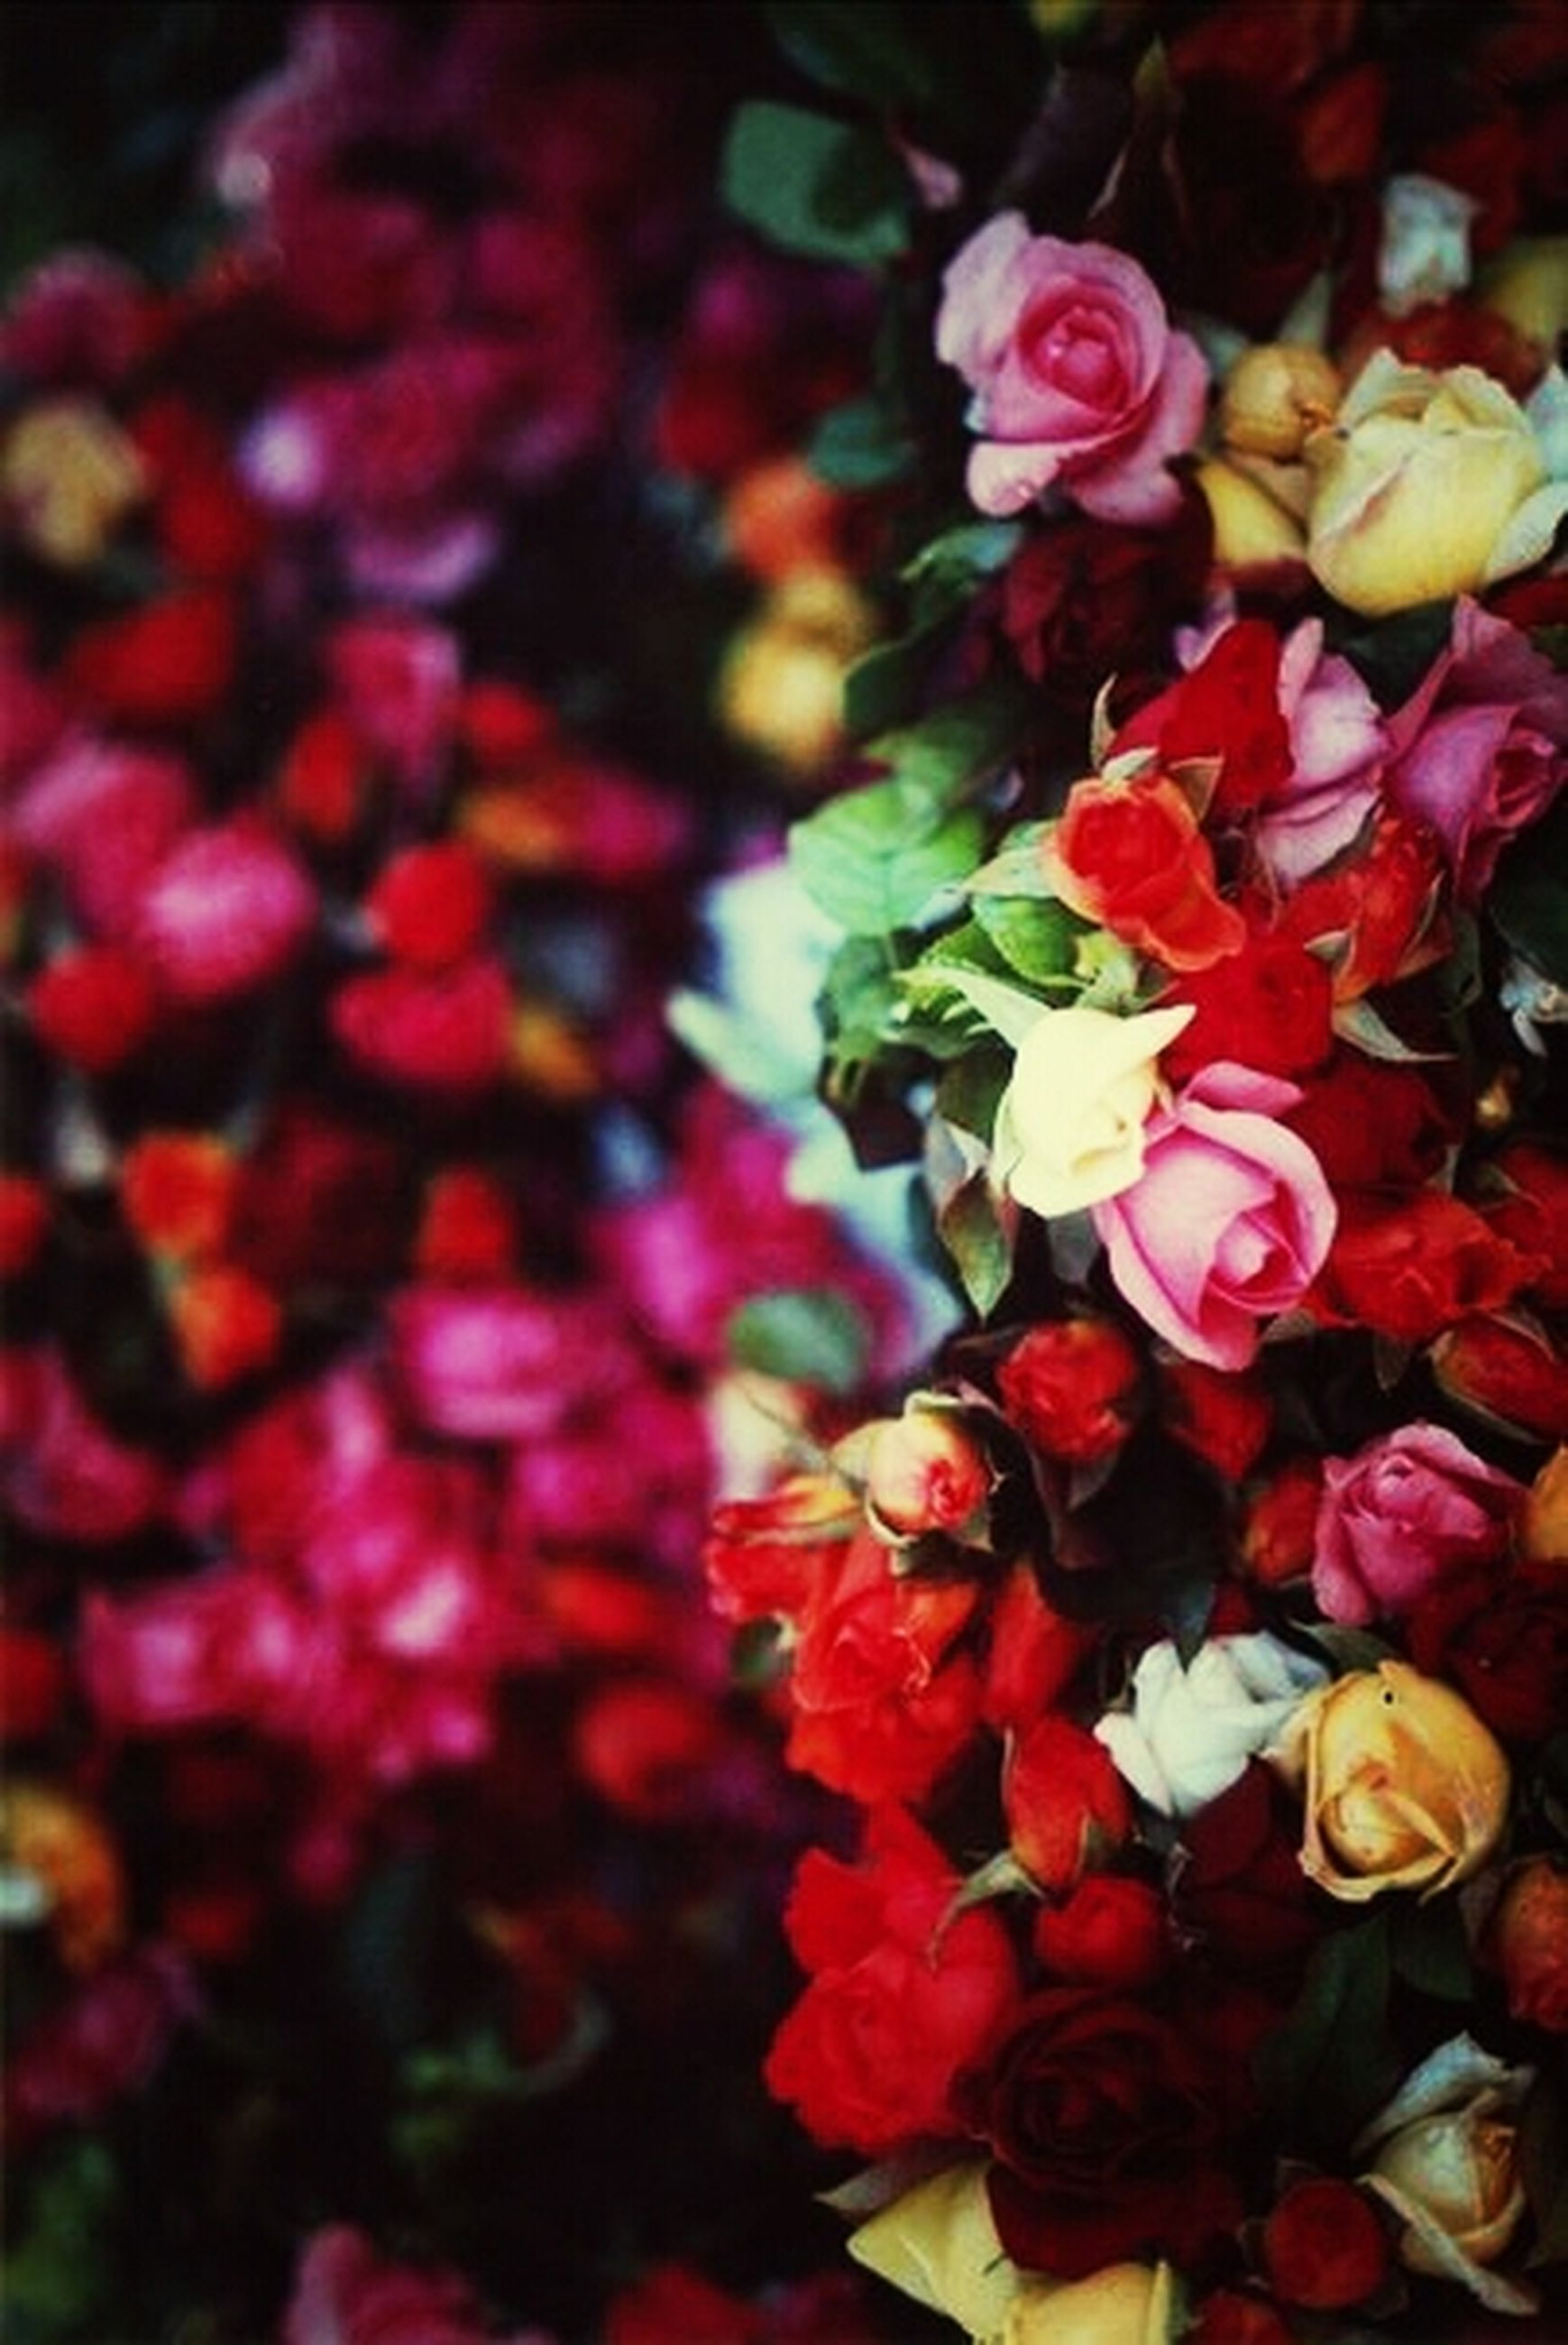 flower, freshness, petal, fragility, flower head, beauty in nature, blooming, growth, abundance, red, nature, close-up, tulip, plant, rose - flower, in bloom, multi colored, high angle view, bunch of flowers, full frame